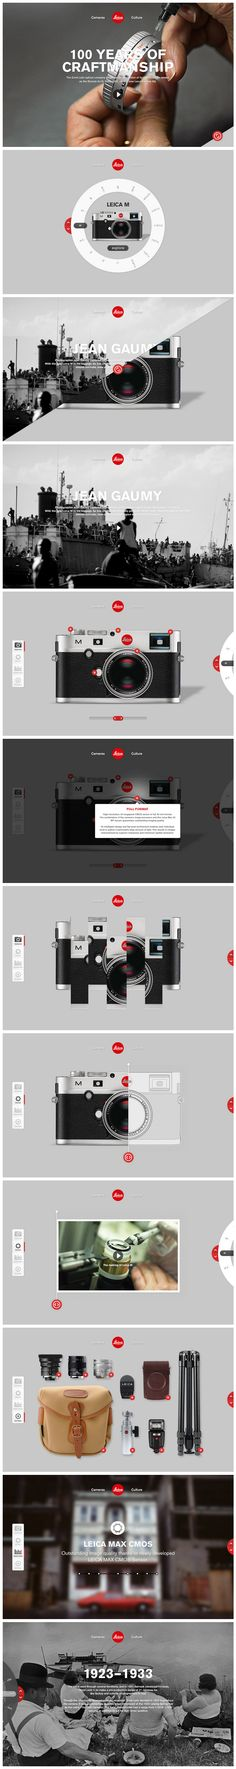 Leica | #webdesign #it #web #design #layout #userinterface #website #webdesign < repinned by www.BlickeDeeler.de | Take a look at www.WebsiteDesign-Hamburg.de